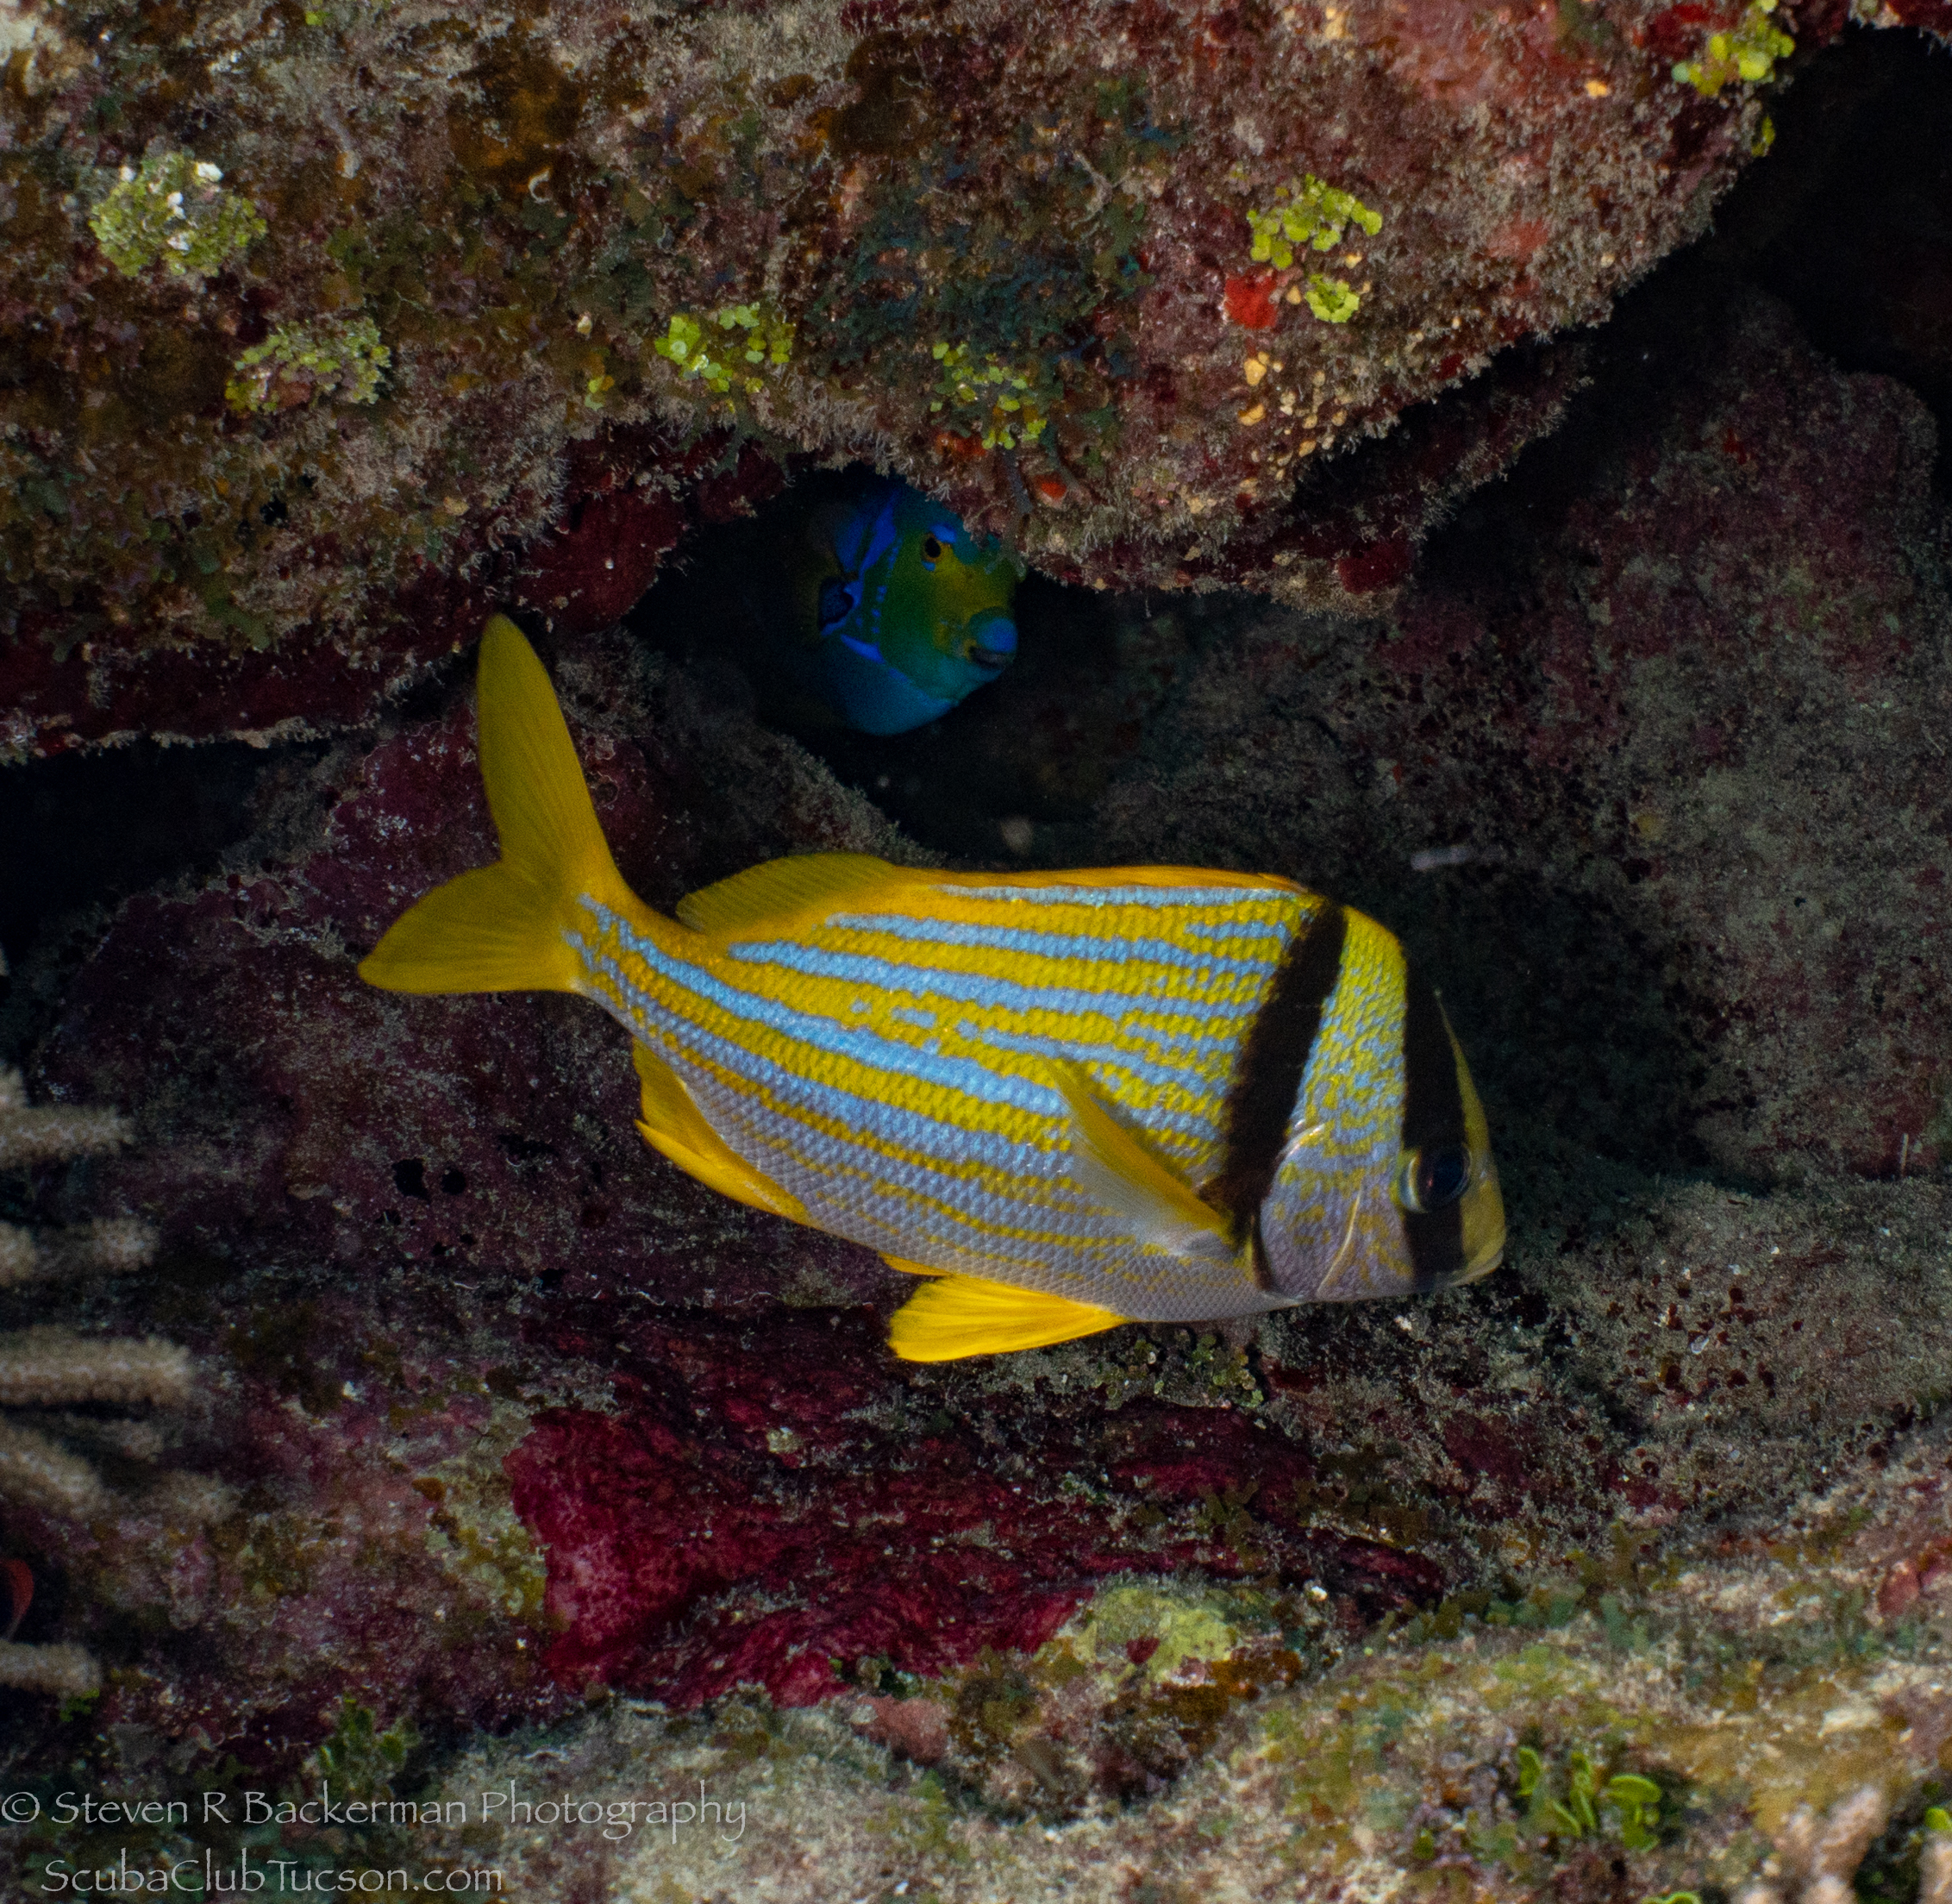 Porkfish-with-Queen-Angelfish-in-background-4136